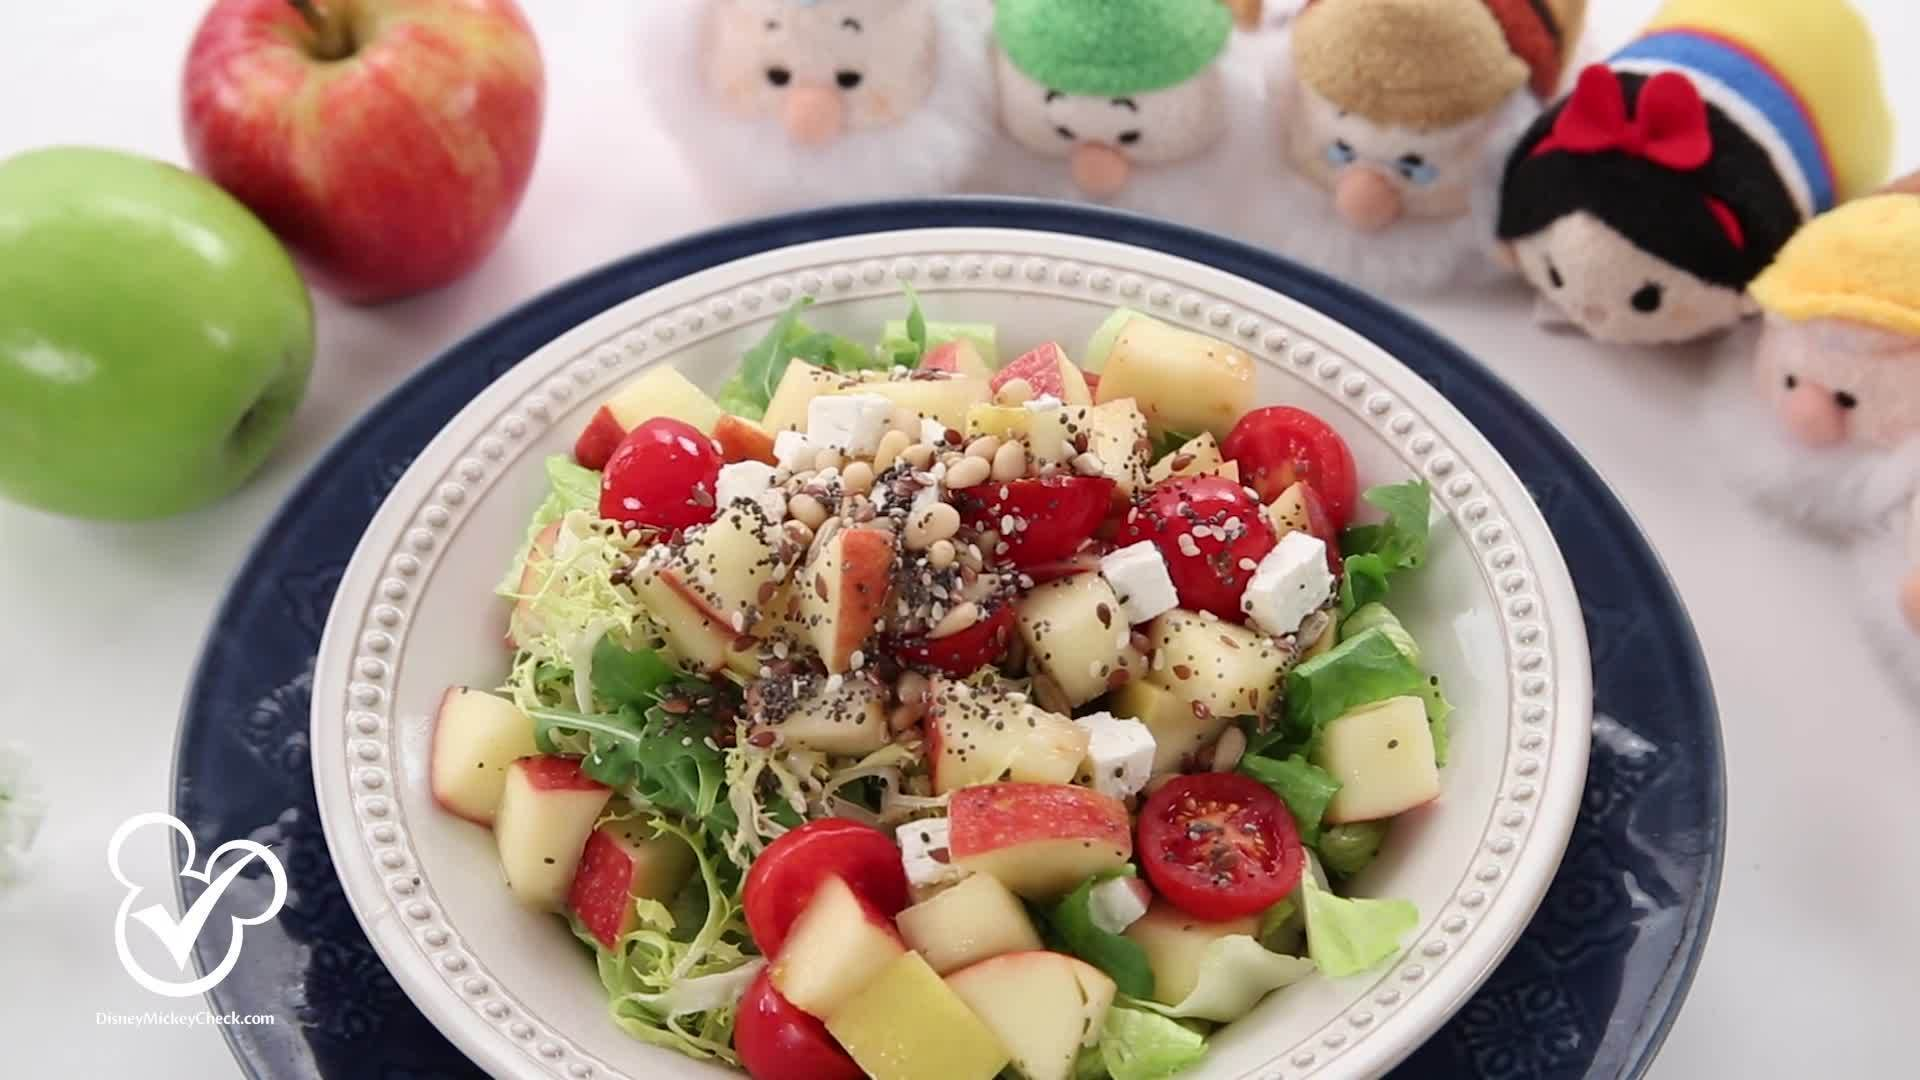 Snow White's Enchanted Apple Salad